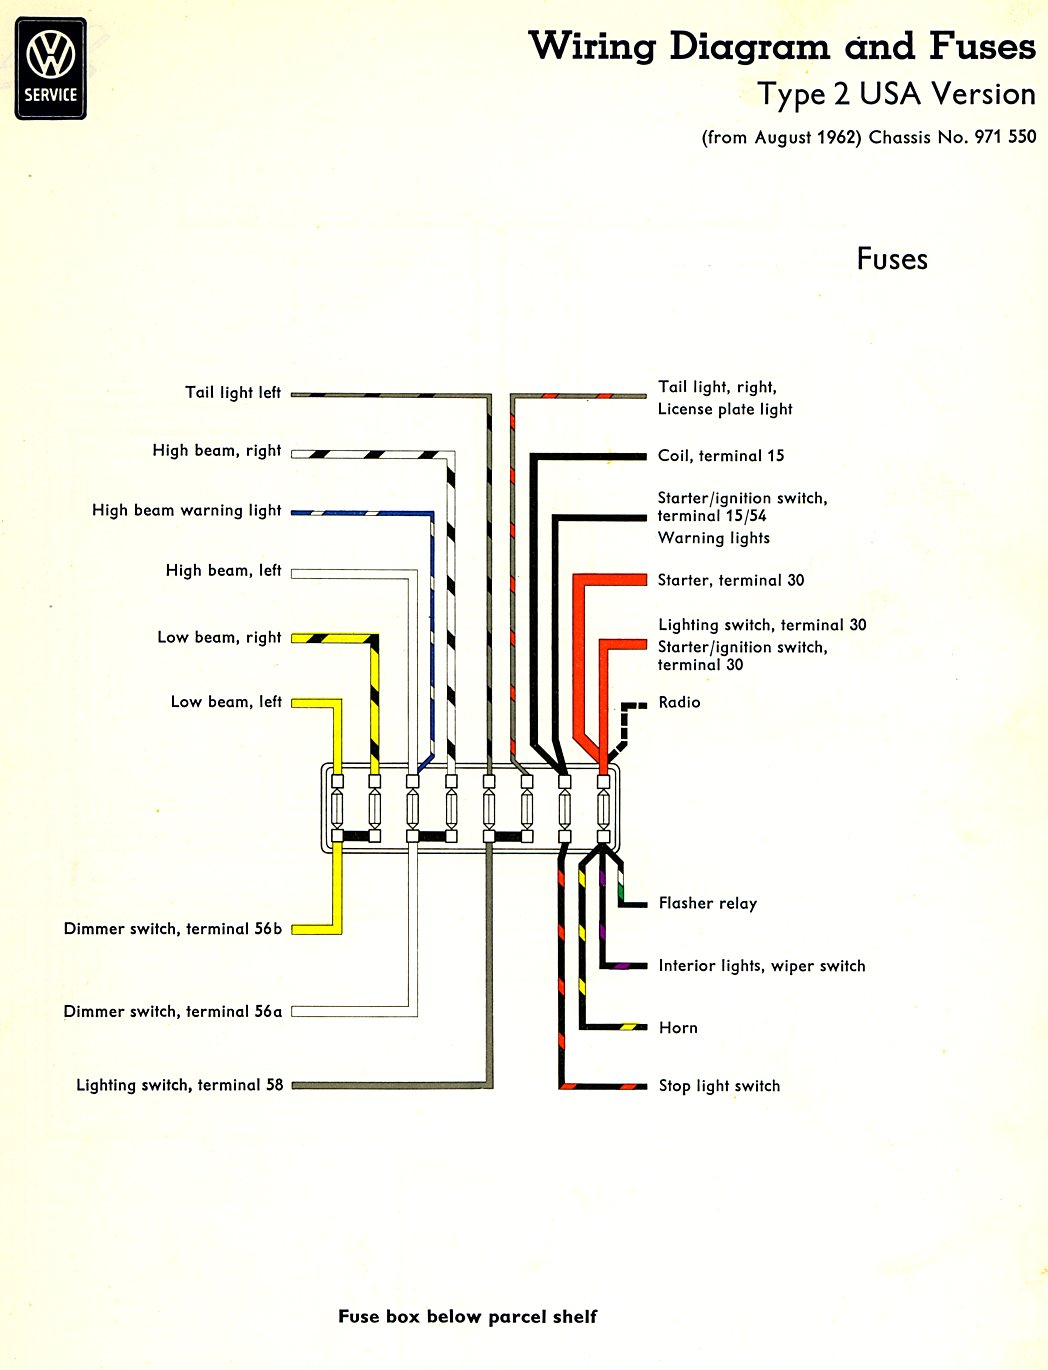 thesamba com type 2 wiring diagrams rh thesamba com 1972 vw super beetle  fuse diagram 1972